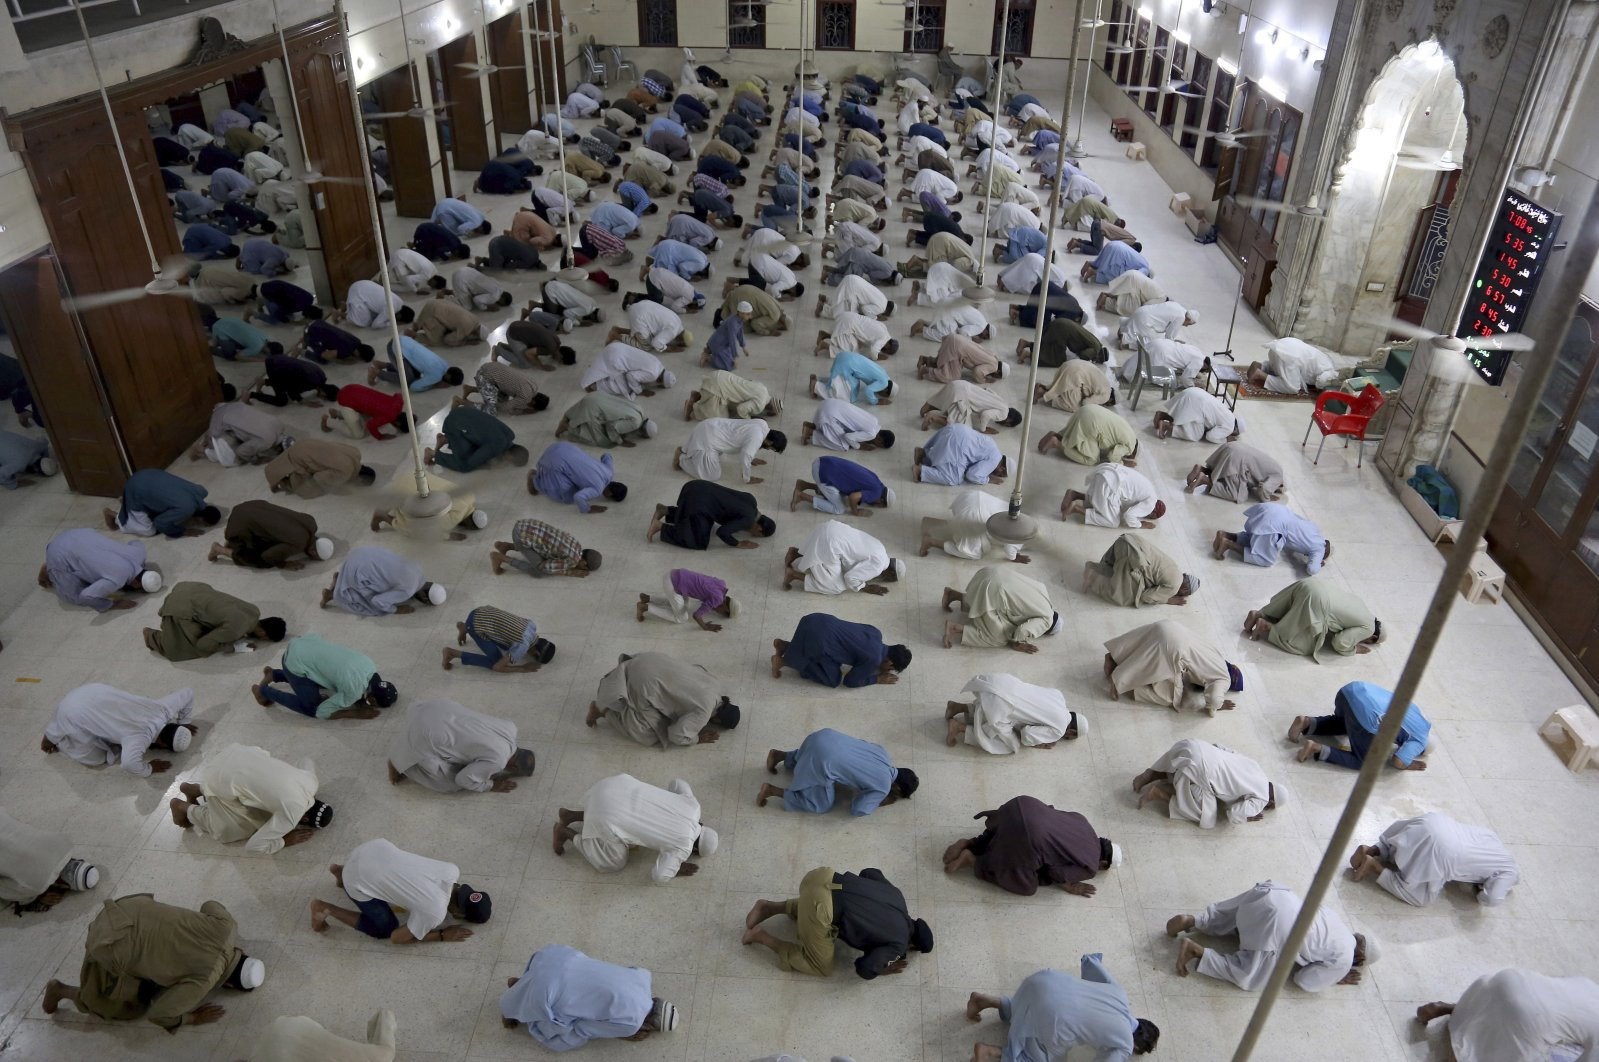 People attend evening prayers while maintaining social distancing to help avoid the spread of the coronavirus, at a mosque in Karachi, Pakistan, April 19, 2020. (AP Photo)